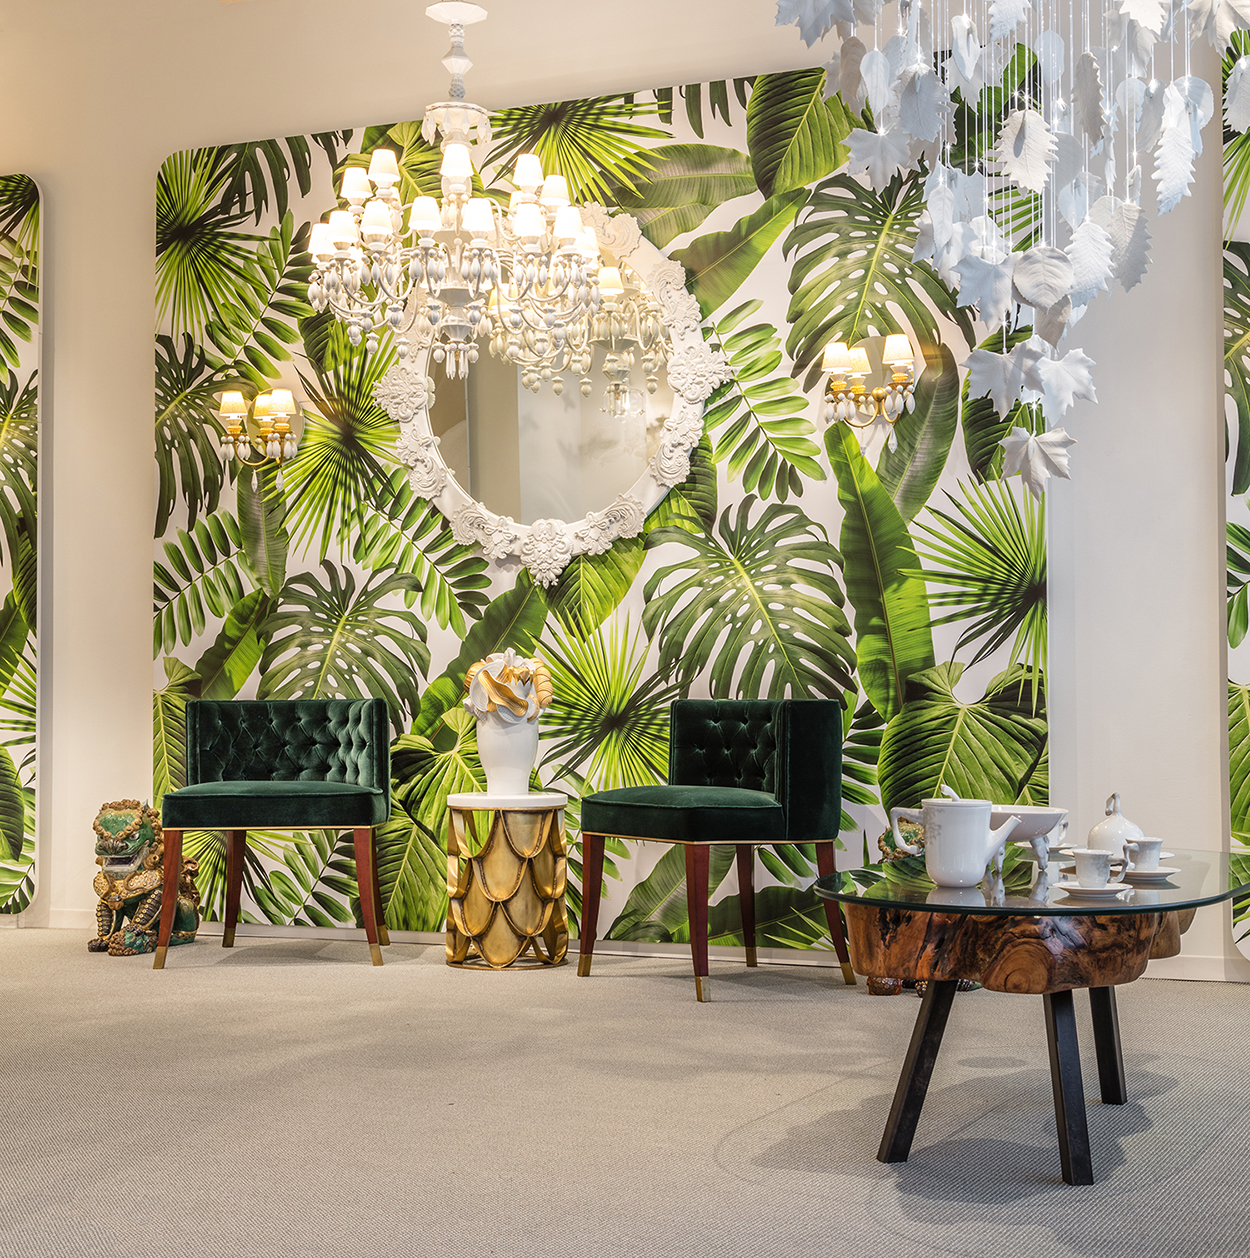 Brabbu-Design-Forces-A-green-garden-wallpaper-featuring-BOURBON-dining-chair-by-BRABBU-Lladró-2073355 Inspired By Nature: How to Add Green to Your Home